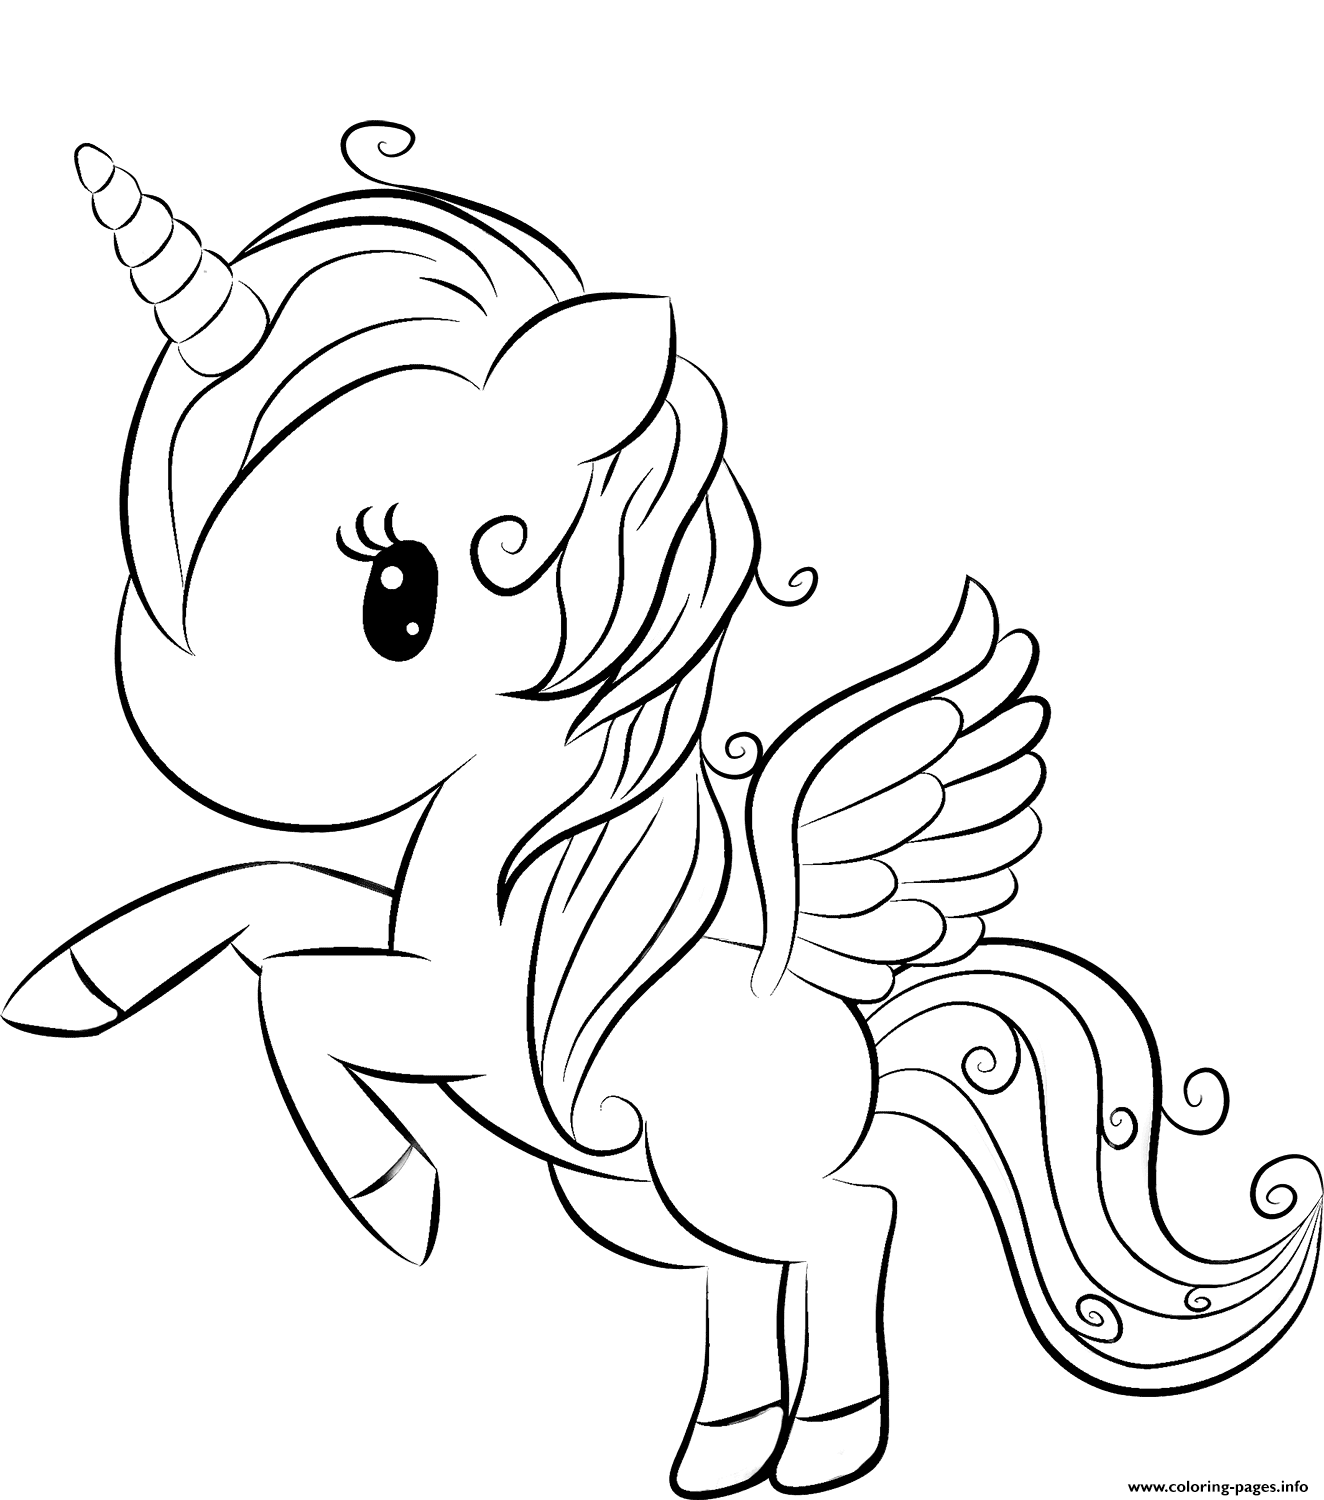 Cute Unicorn 2 Coloring Pages Printable